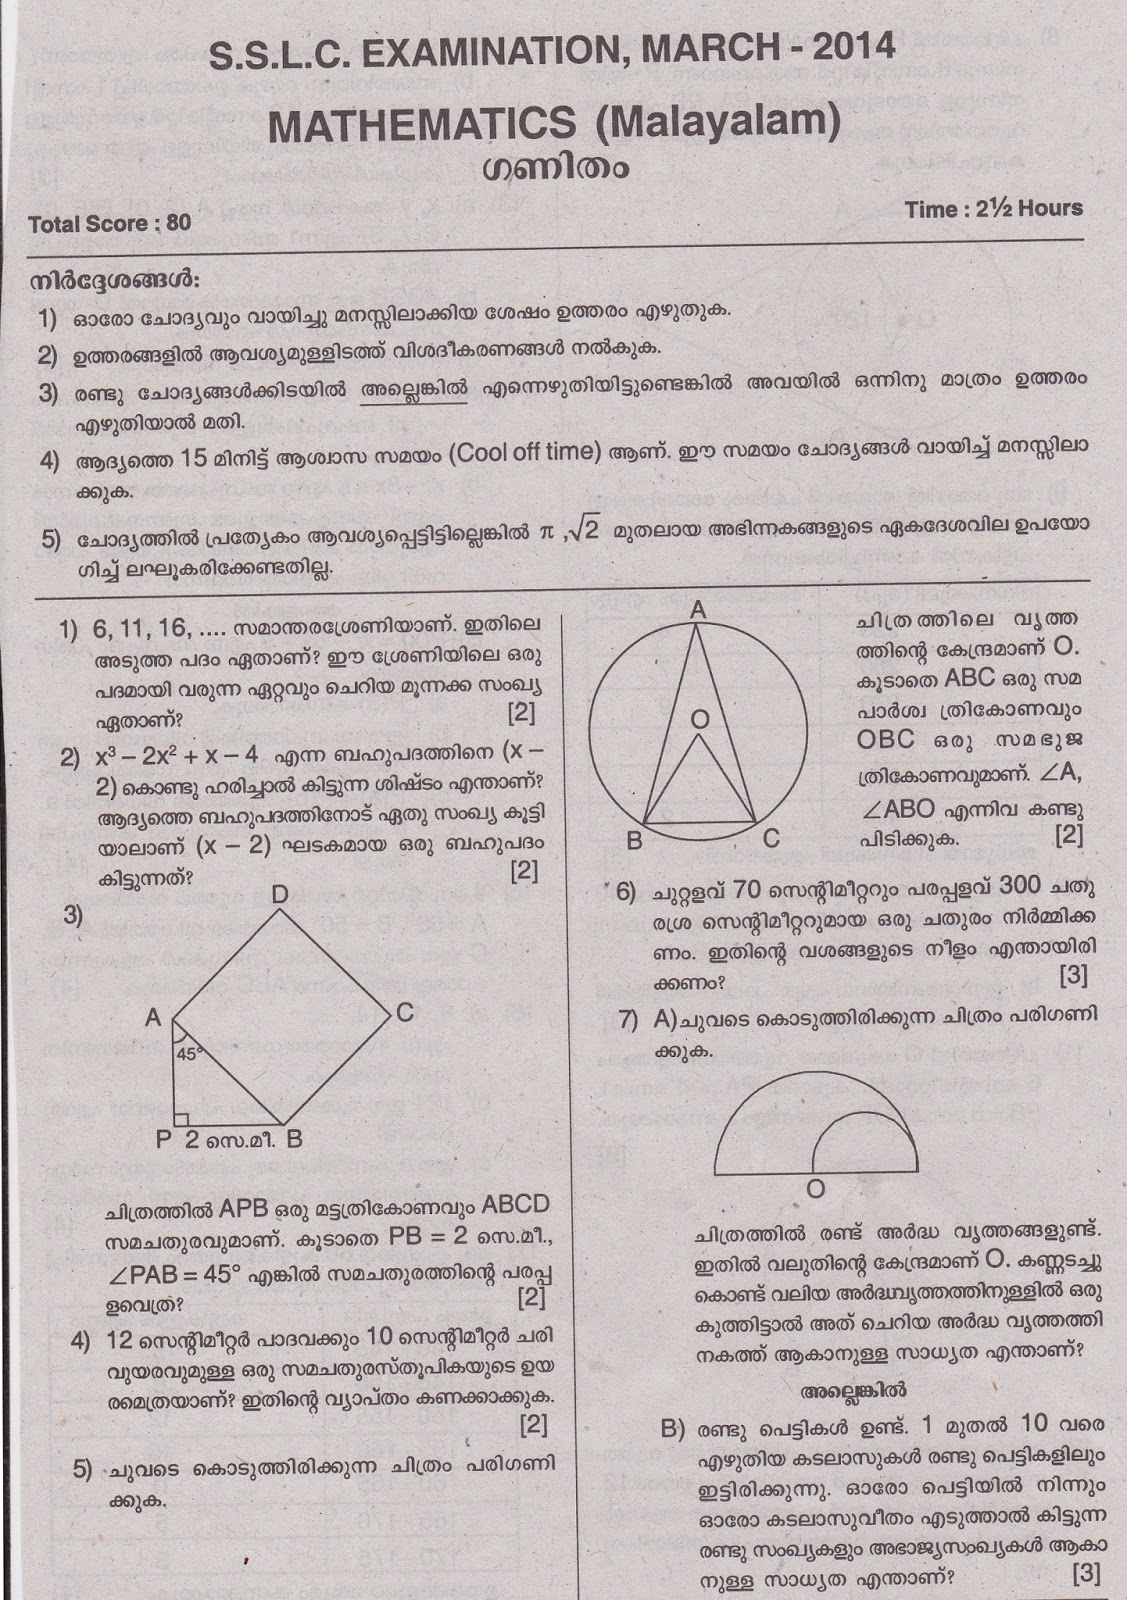 Sslc question paper sslc model question paper 2014 mathematics sslc model question papers mathematics malvernweather Image collections